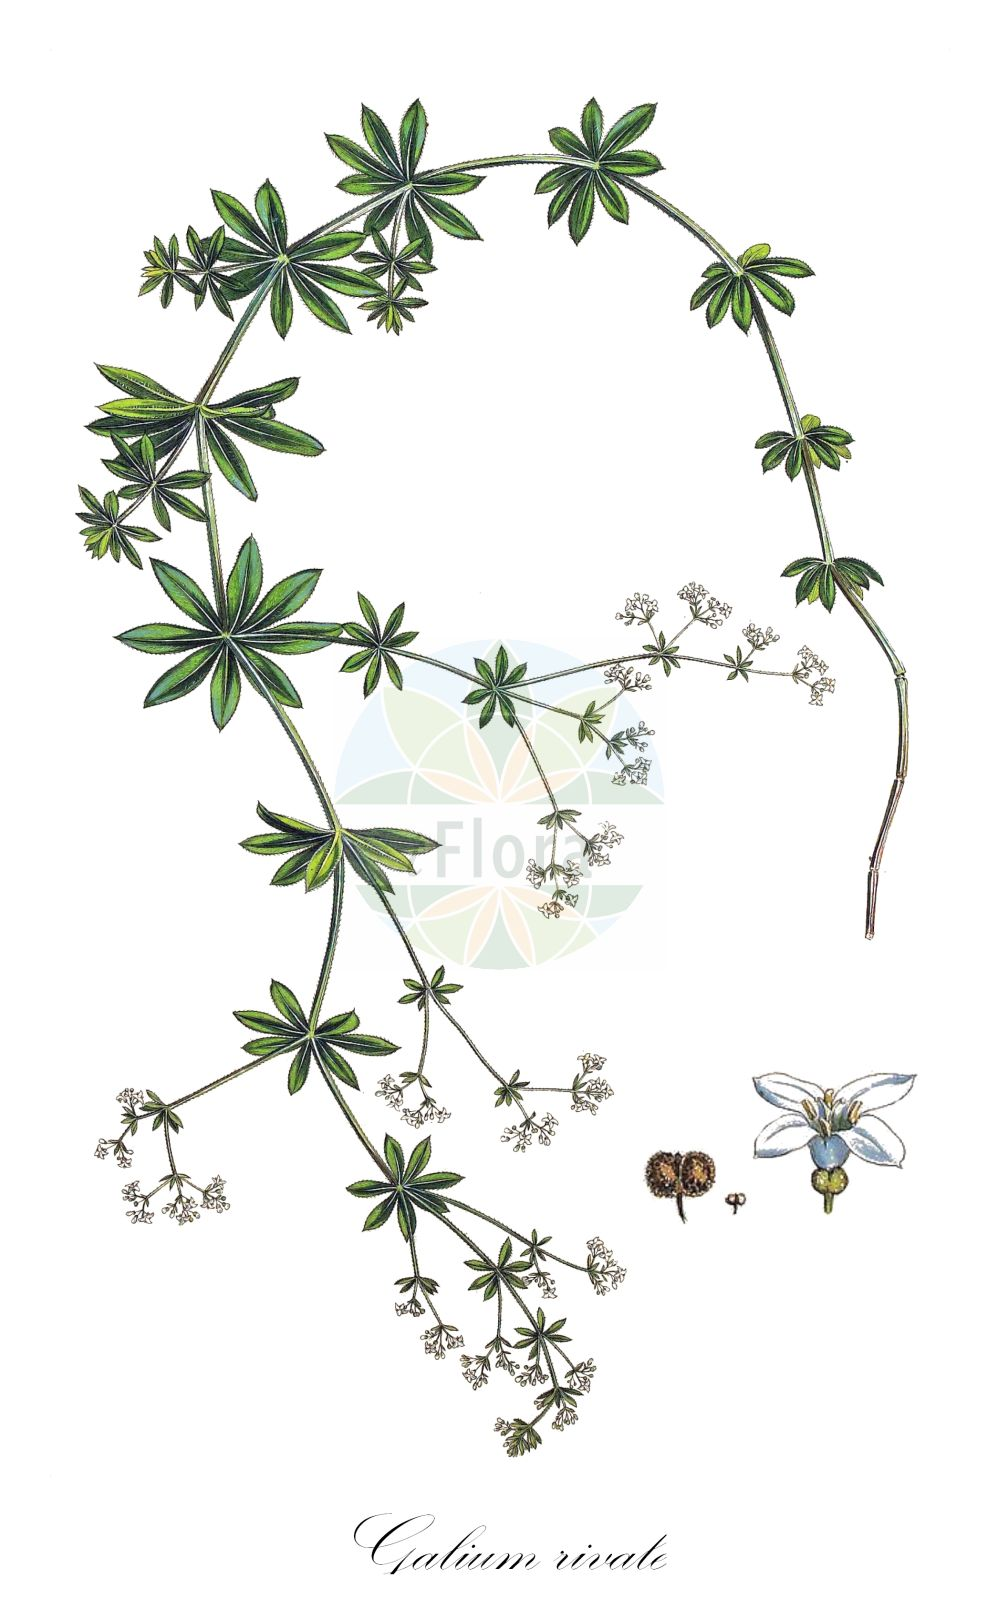 Historische Abbildung von Galium rivale. Das Bild zeigt Blatt, Bluete, Frucht und Same. ---- Historical Drawing of Galium rivale.The image is showing leaf, flower, fruit and seed.(Galium rivale,Asperula aparine,Asperula rivalis,,Galium,Labkraut,Bedstraw,Rubiaceae,Roetegewaechse;Kaffeegewaechse;Krappgewaechse;Labkrautgewaechse,Bedstraw family,Blatt,Bluete,Frucht,Same,leaf,flower,fruit,seed,Sibthrop & Smith (1806-1840))